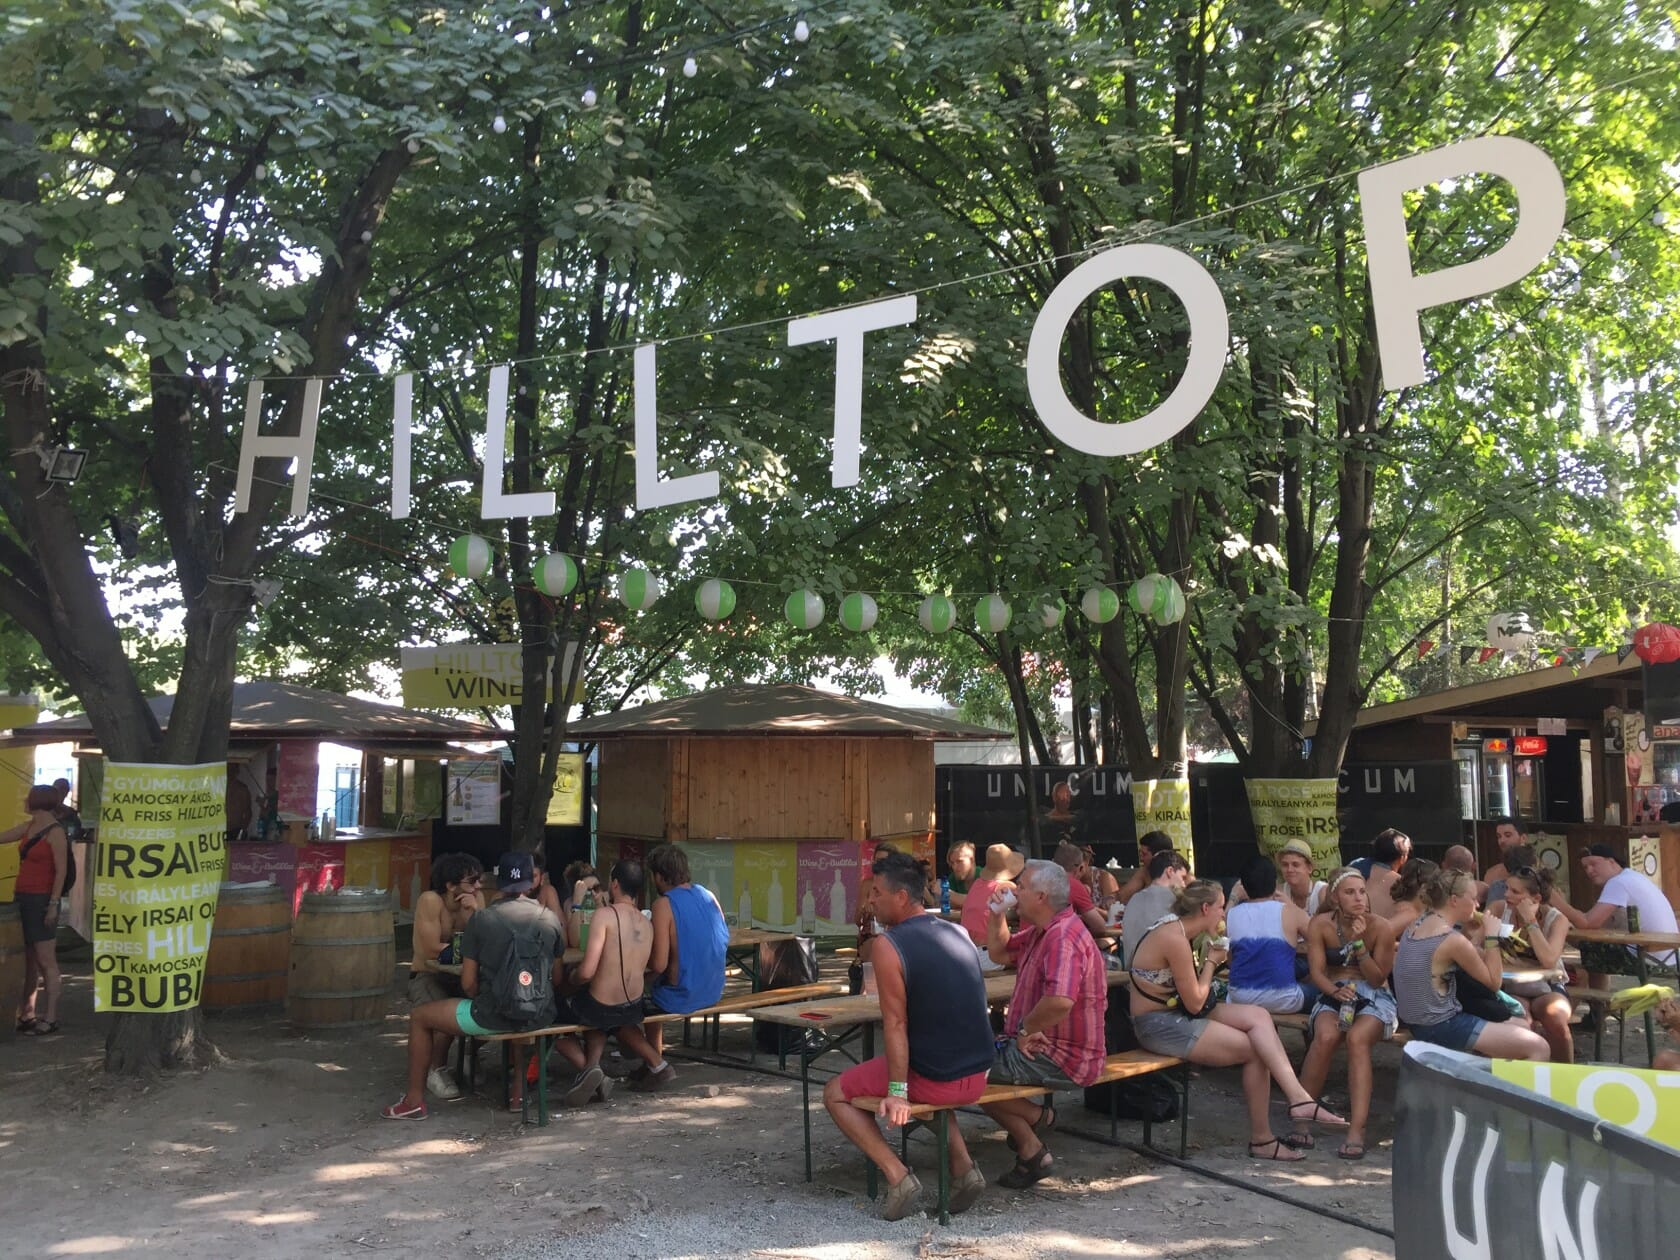 sziget review + festival guide for sziget festival in budapest august food at sziget